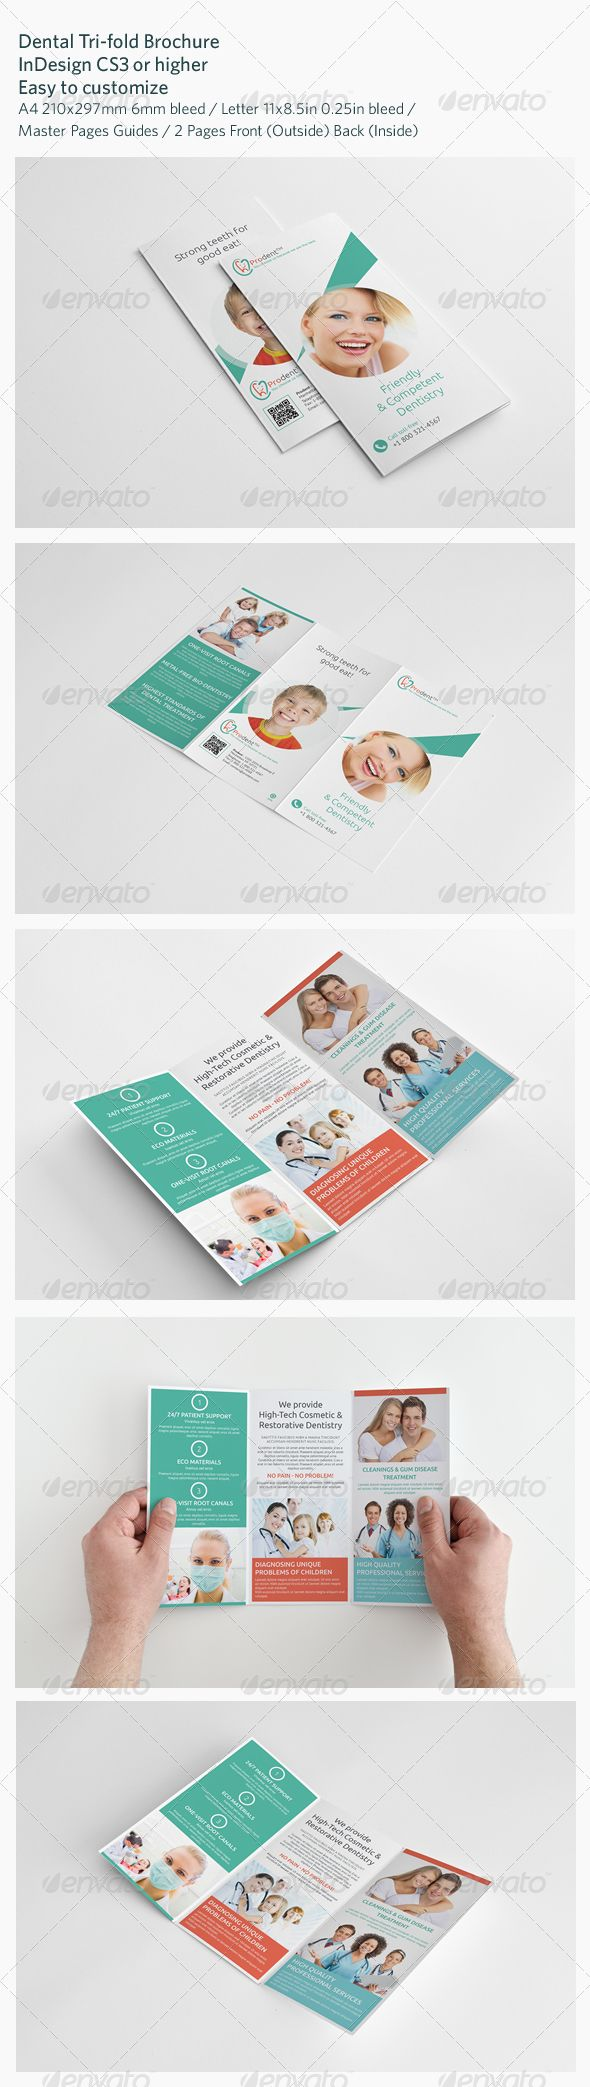 tri fold brochure template indesign cs6 96 best images about clean print design on pinterest